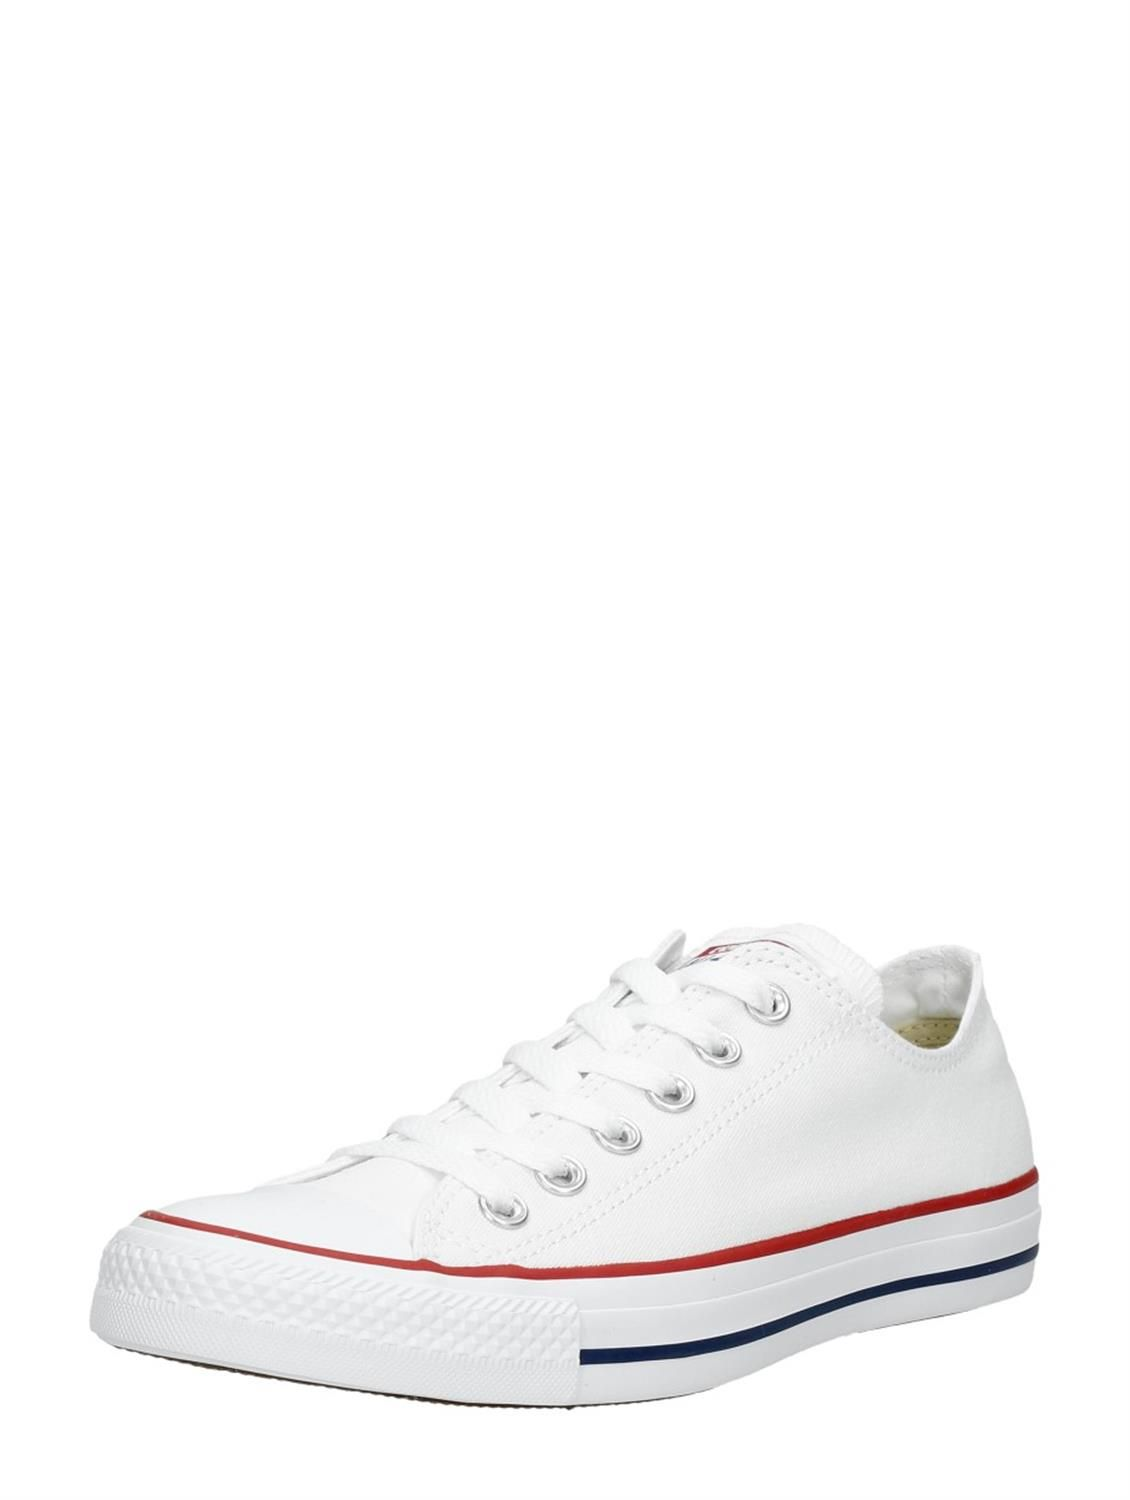 2d43d7e5cca Converse Chuck Taylor All Star laag wit dames | CONVERSE in 2019 ...